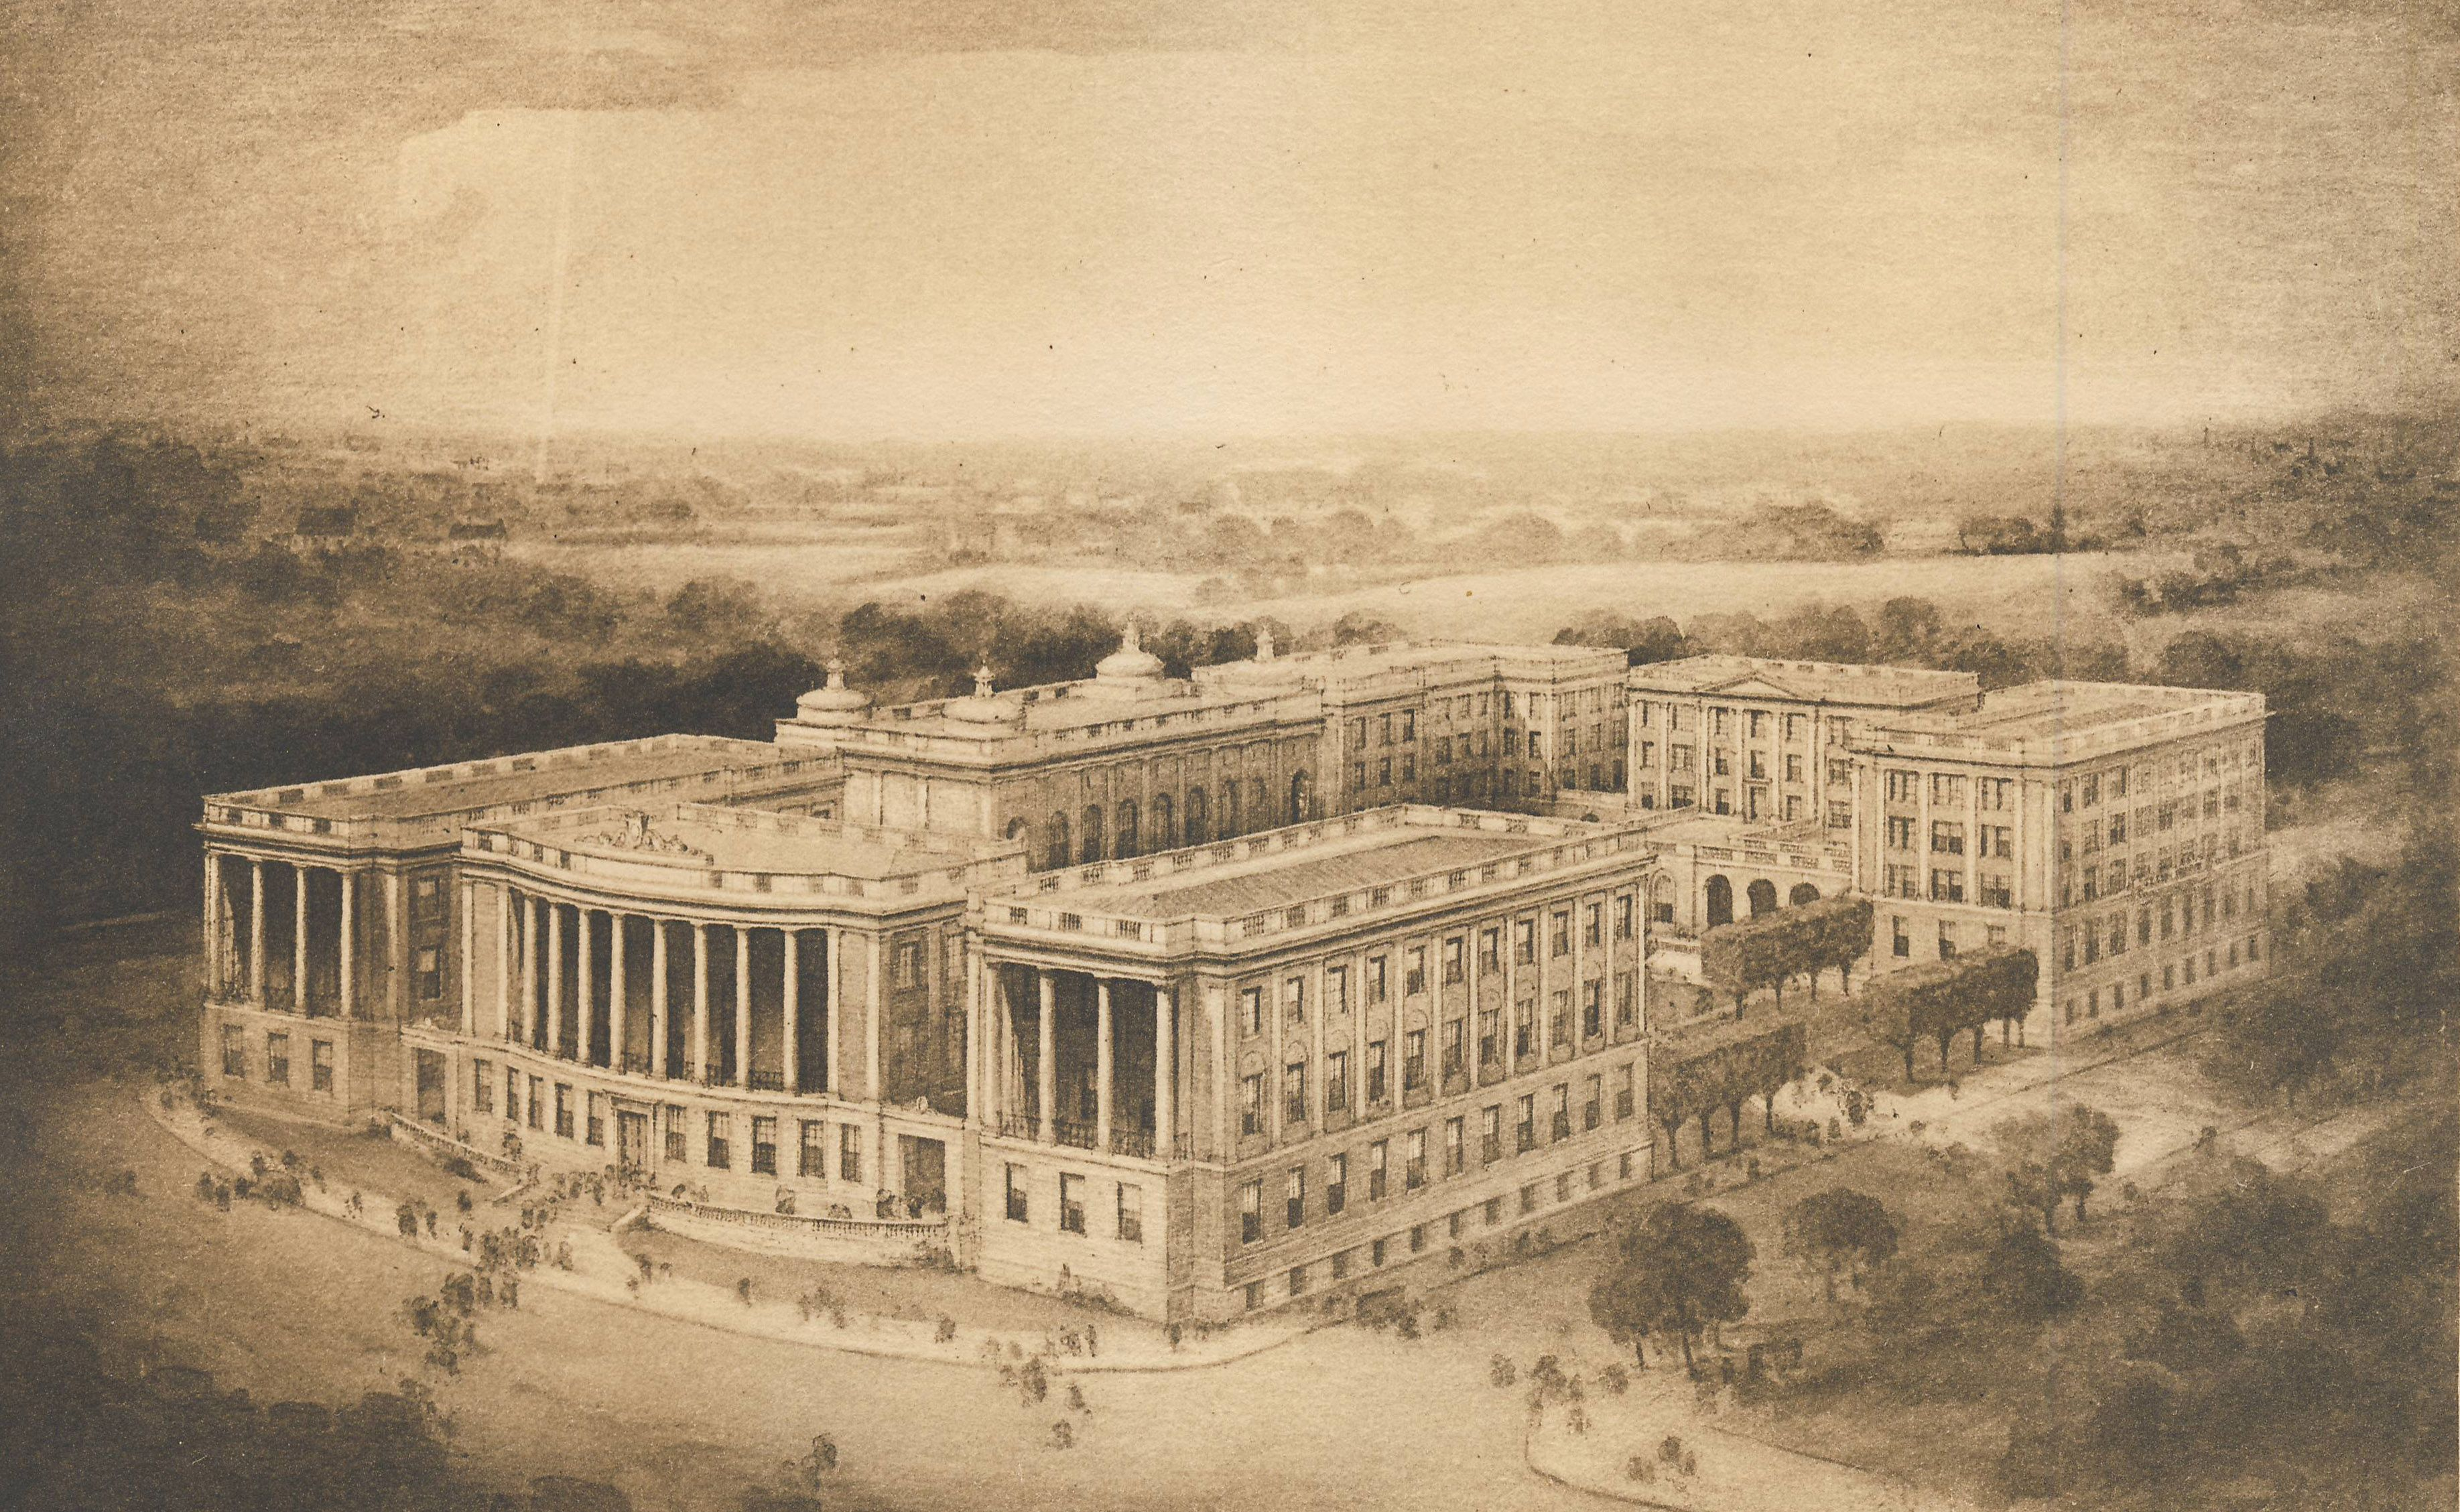 Adelphi Academy, founded in Brooklyn, New York in 1863. In